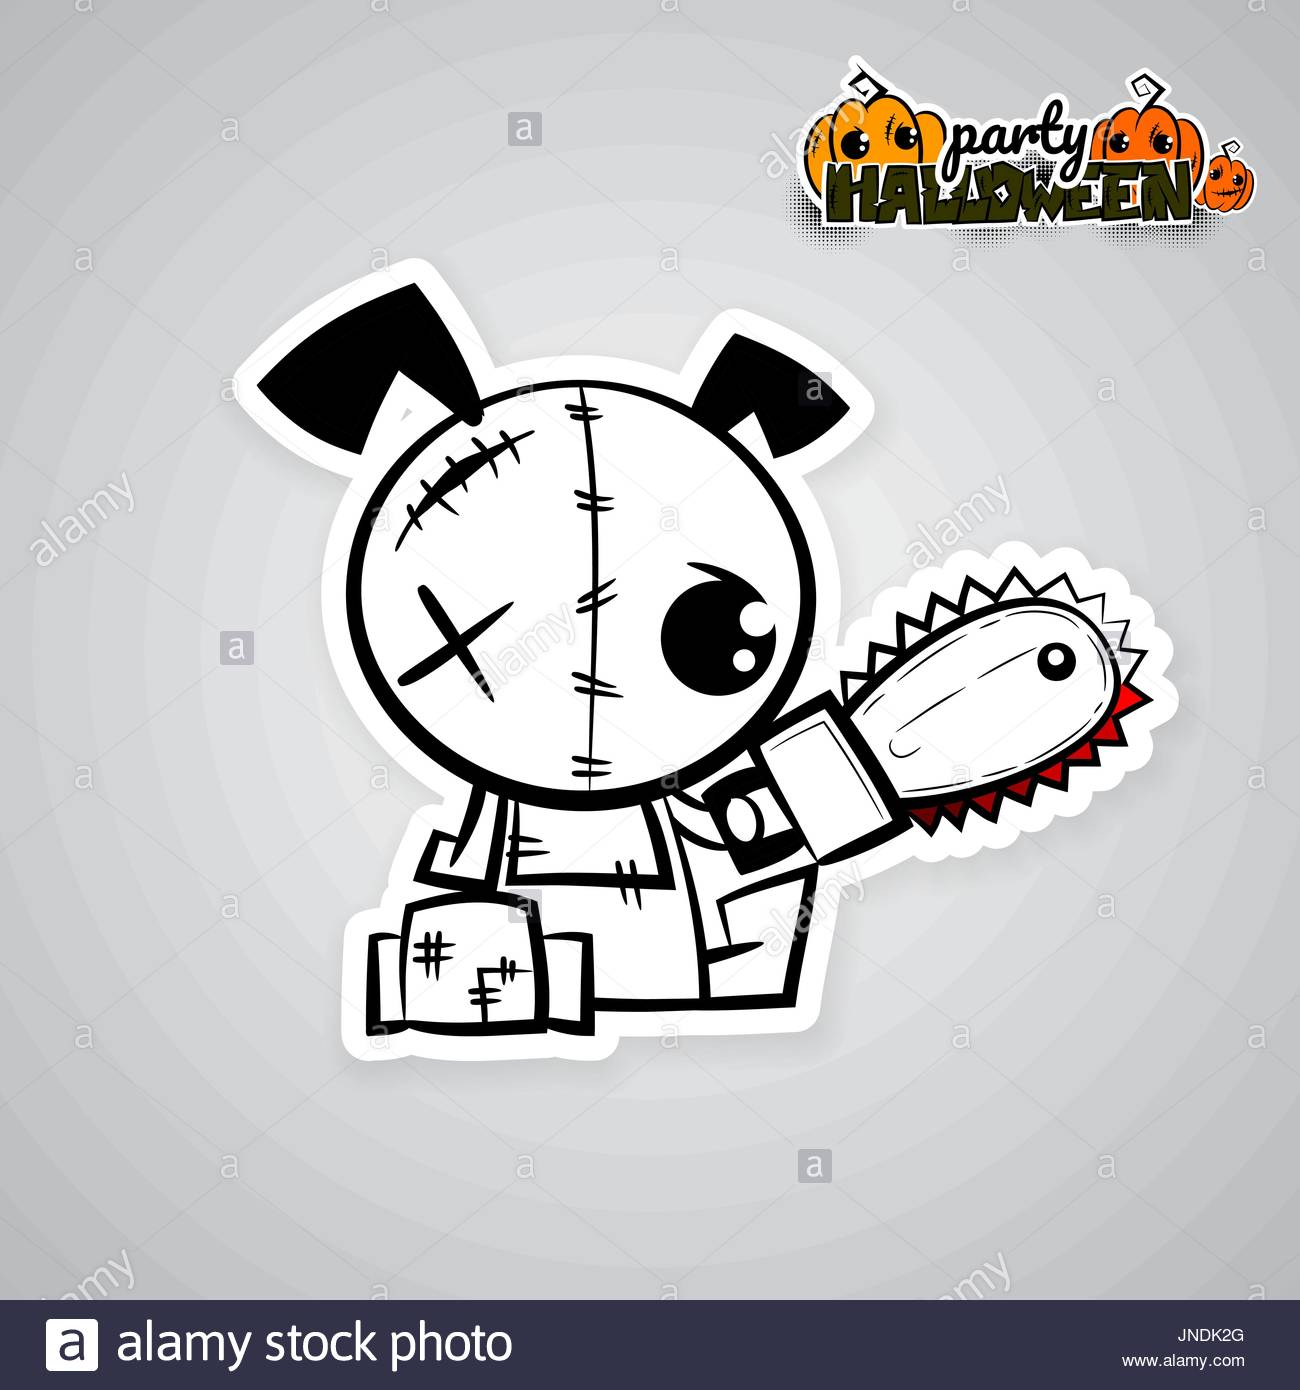 1300x1390 Helloween Evil Dog Voodoo Doll Pop Art Comic Stock Vector Art